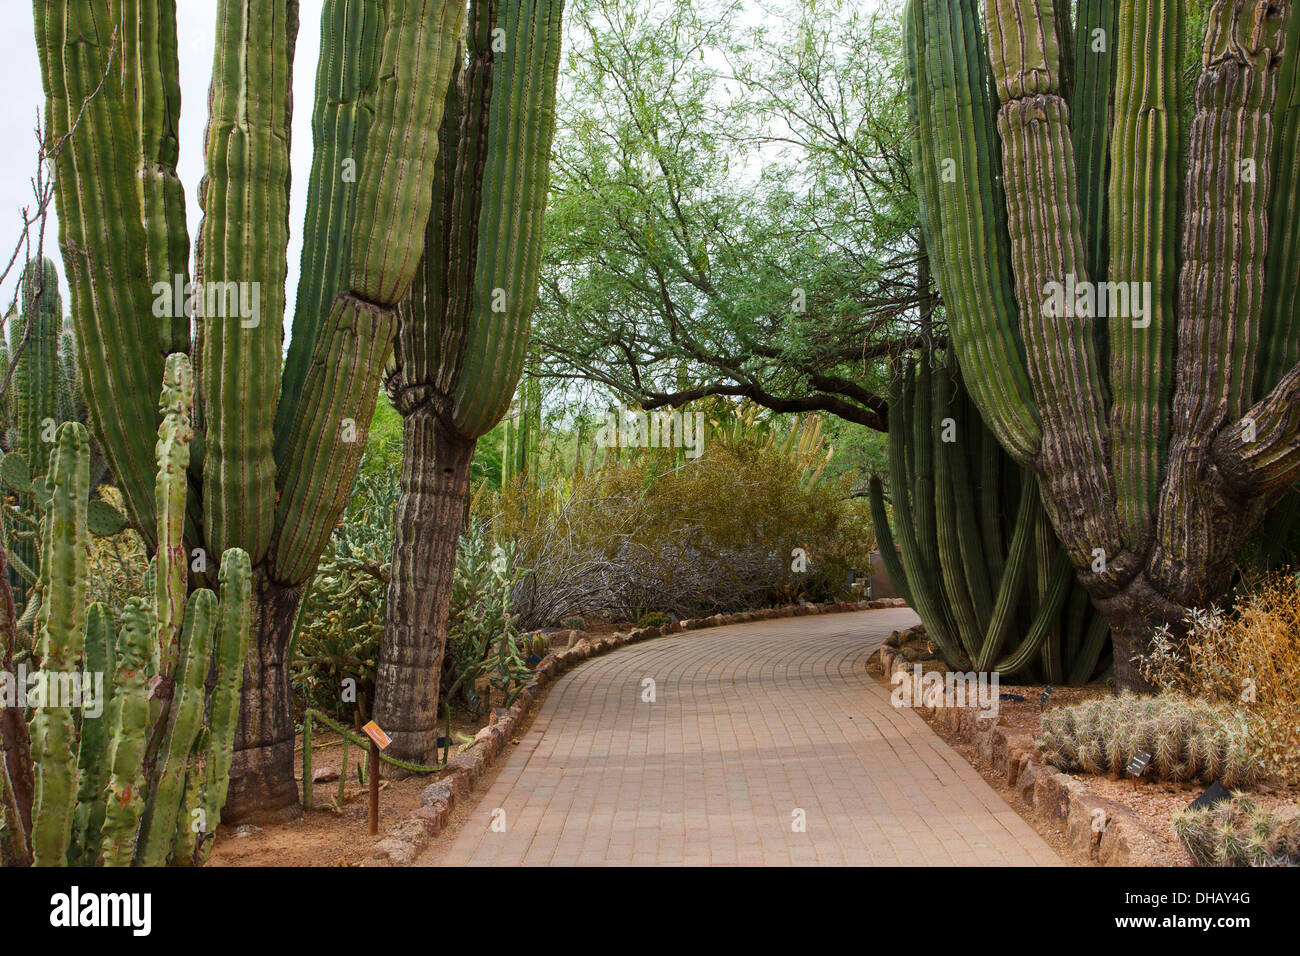 Desert Botanical Garden, Phoenix, Arizona Stock Photo: 62321072 - Alamy